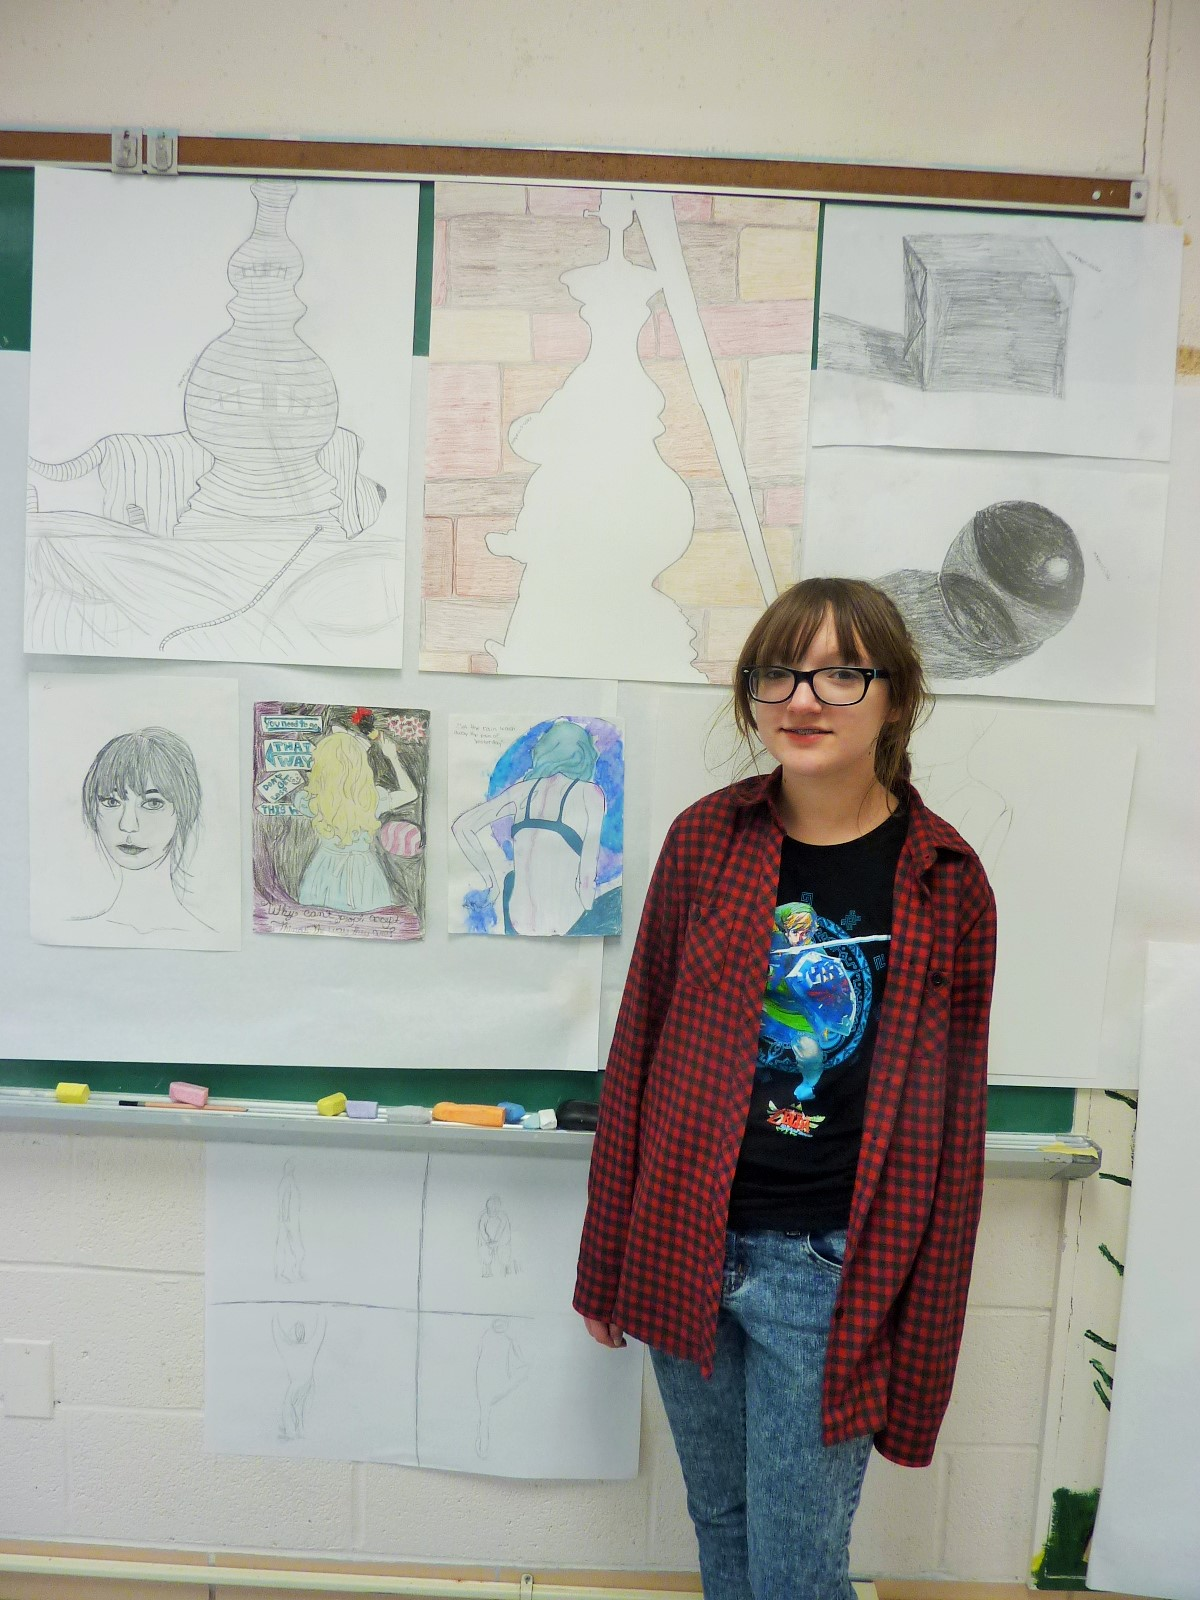 Another natural draftsman in Drawing Fundamentals, Katie